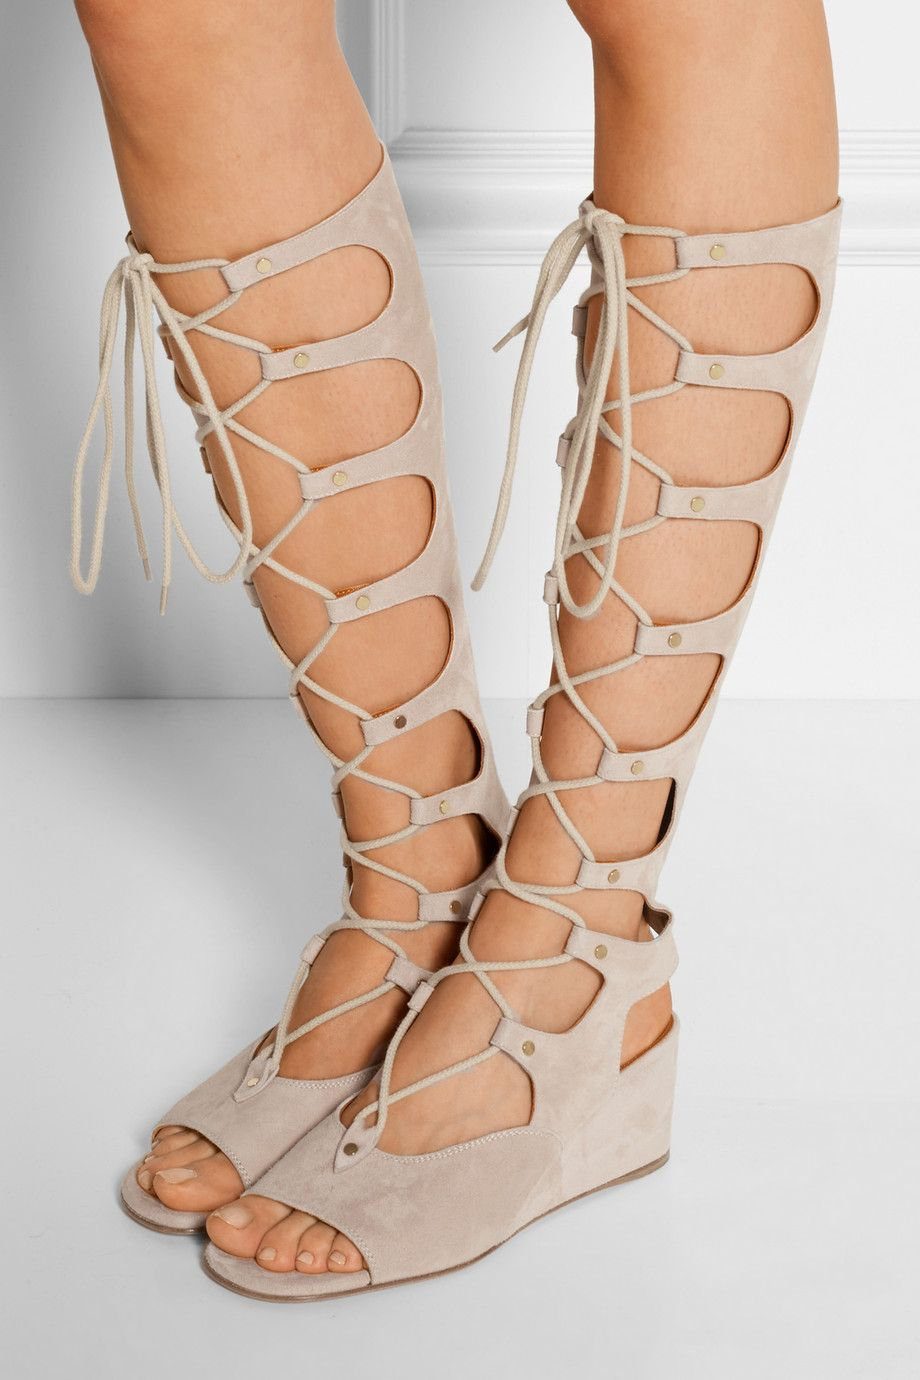 cheap low cost Chloé Lace-Up Wedge Sandals best place for sale clearance nicekicks clearance 2014 newest Fg7aKC